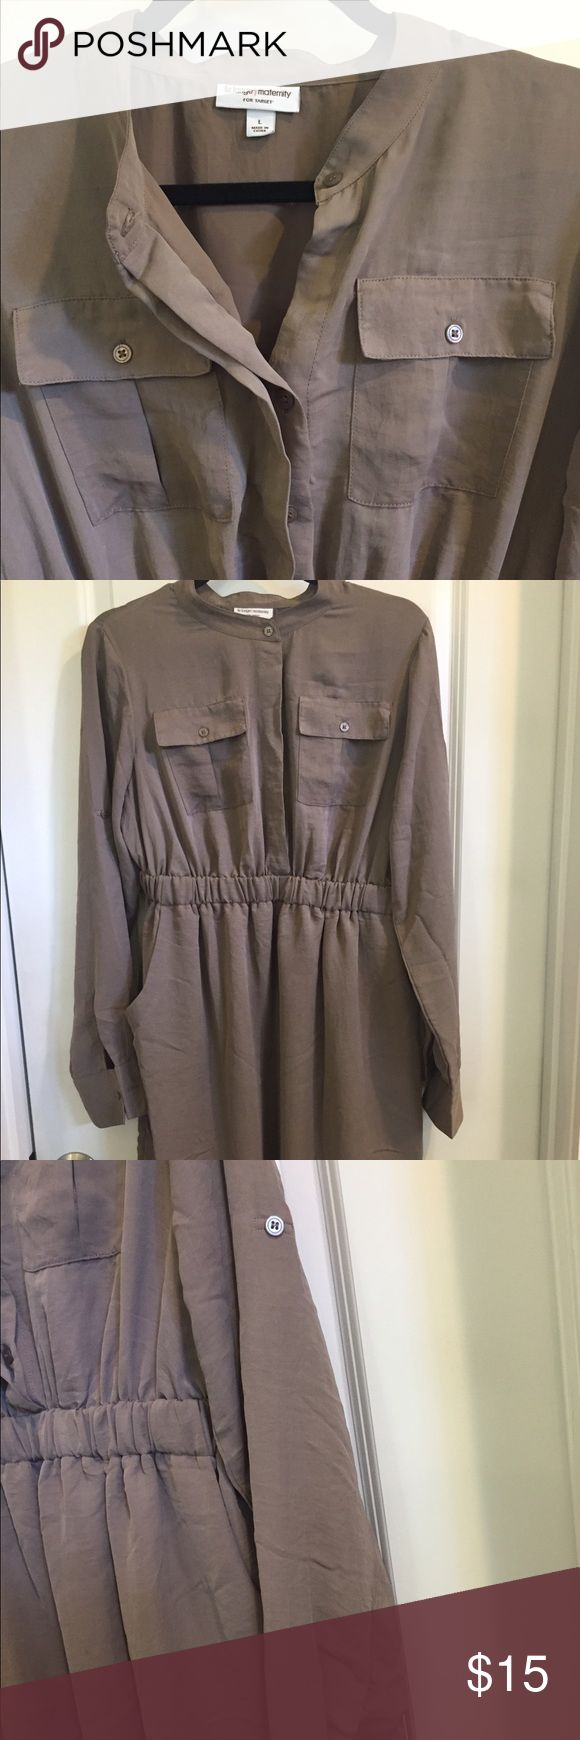 Maternity dress Great everyday dress. Maternity. Deep khaki color serves as a great neutral. Sleeves can be rolled and fastened to create a short sleeve. Dress hits just above knee length. Great belted or left without. Liz Lange for Target Dresses